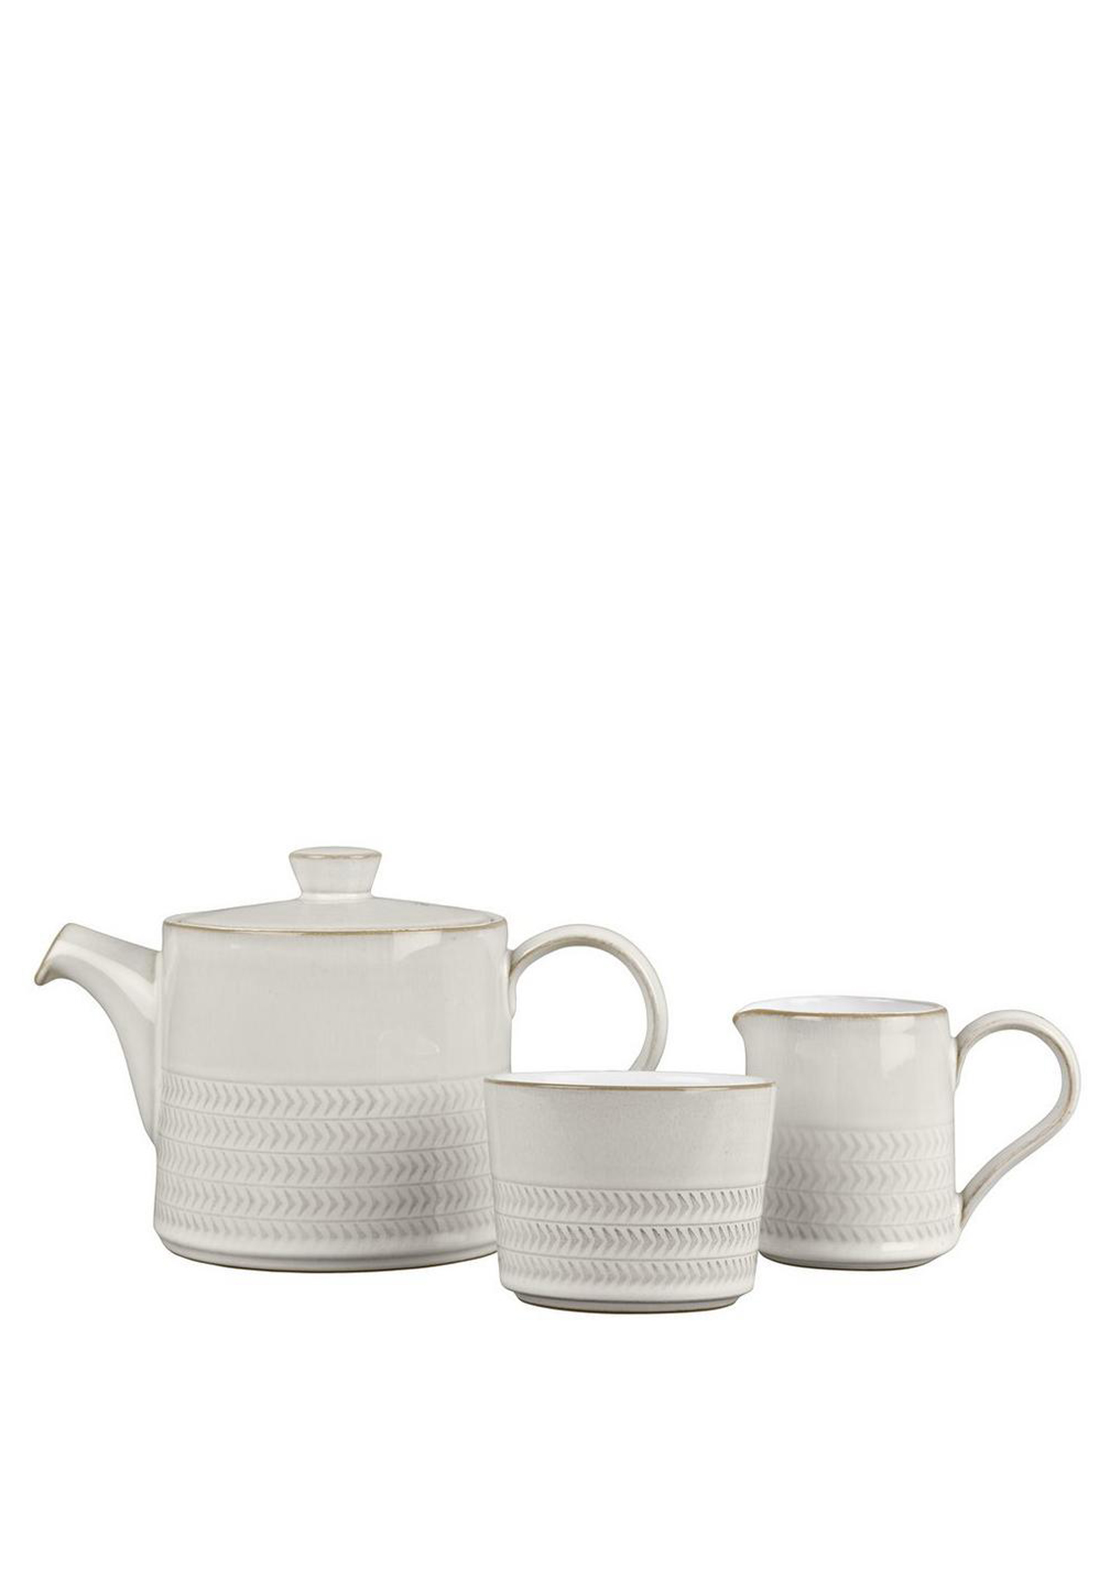 Denby Natural Canvas Teapot Sugar Bowl & Small Jug